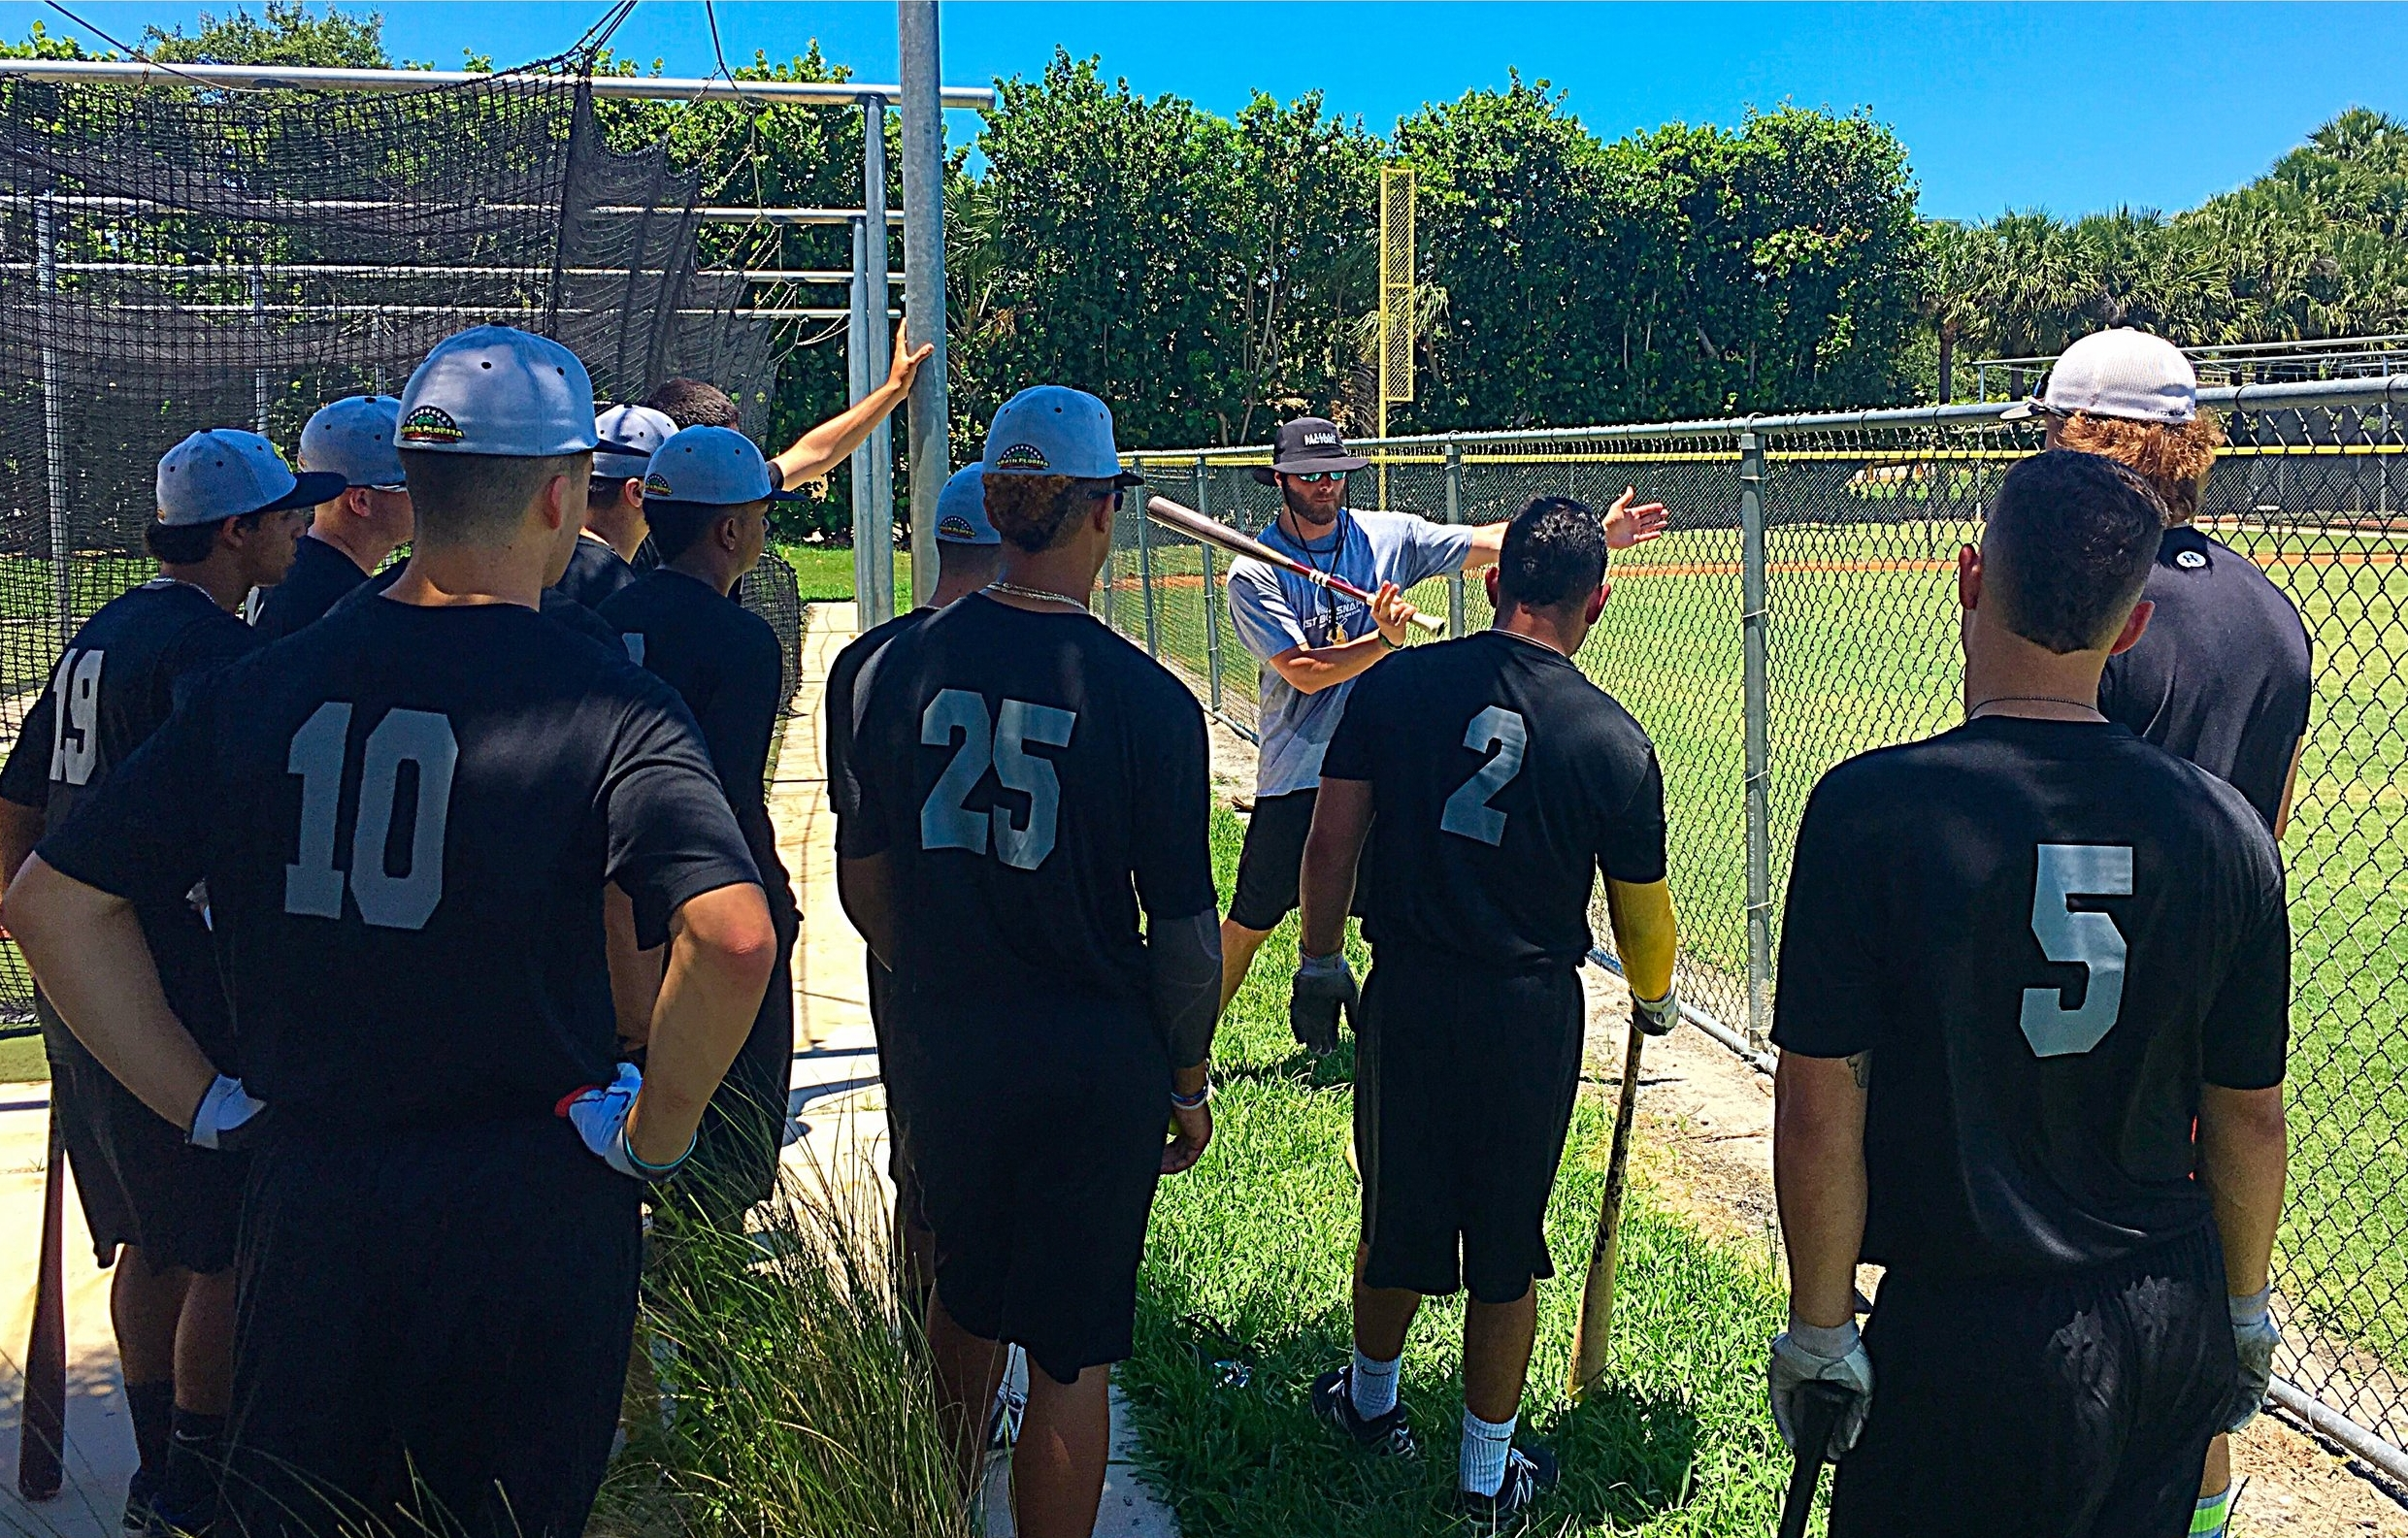 coach ross's hitting instruction with our college guys